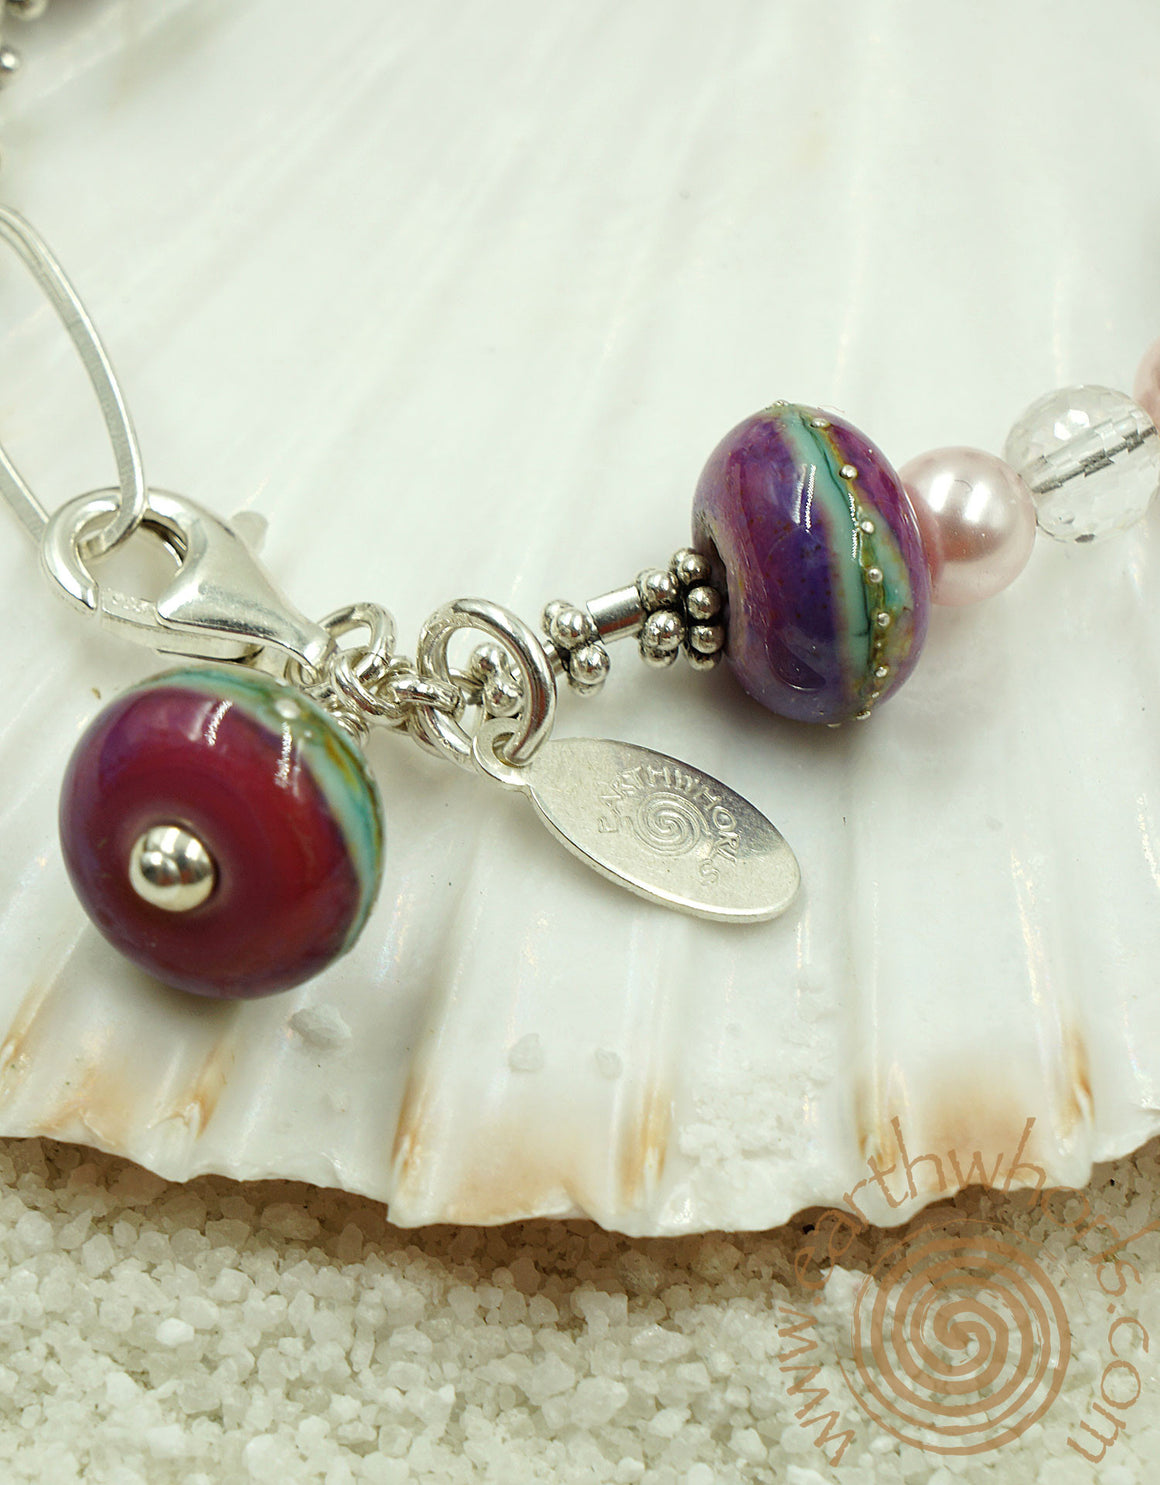 Handmade Glass Bead Bracelet with Sterling Silver & Pearls - EarthWhorls, LLC